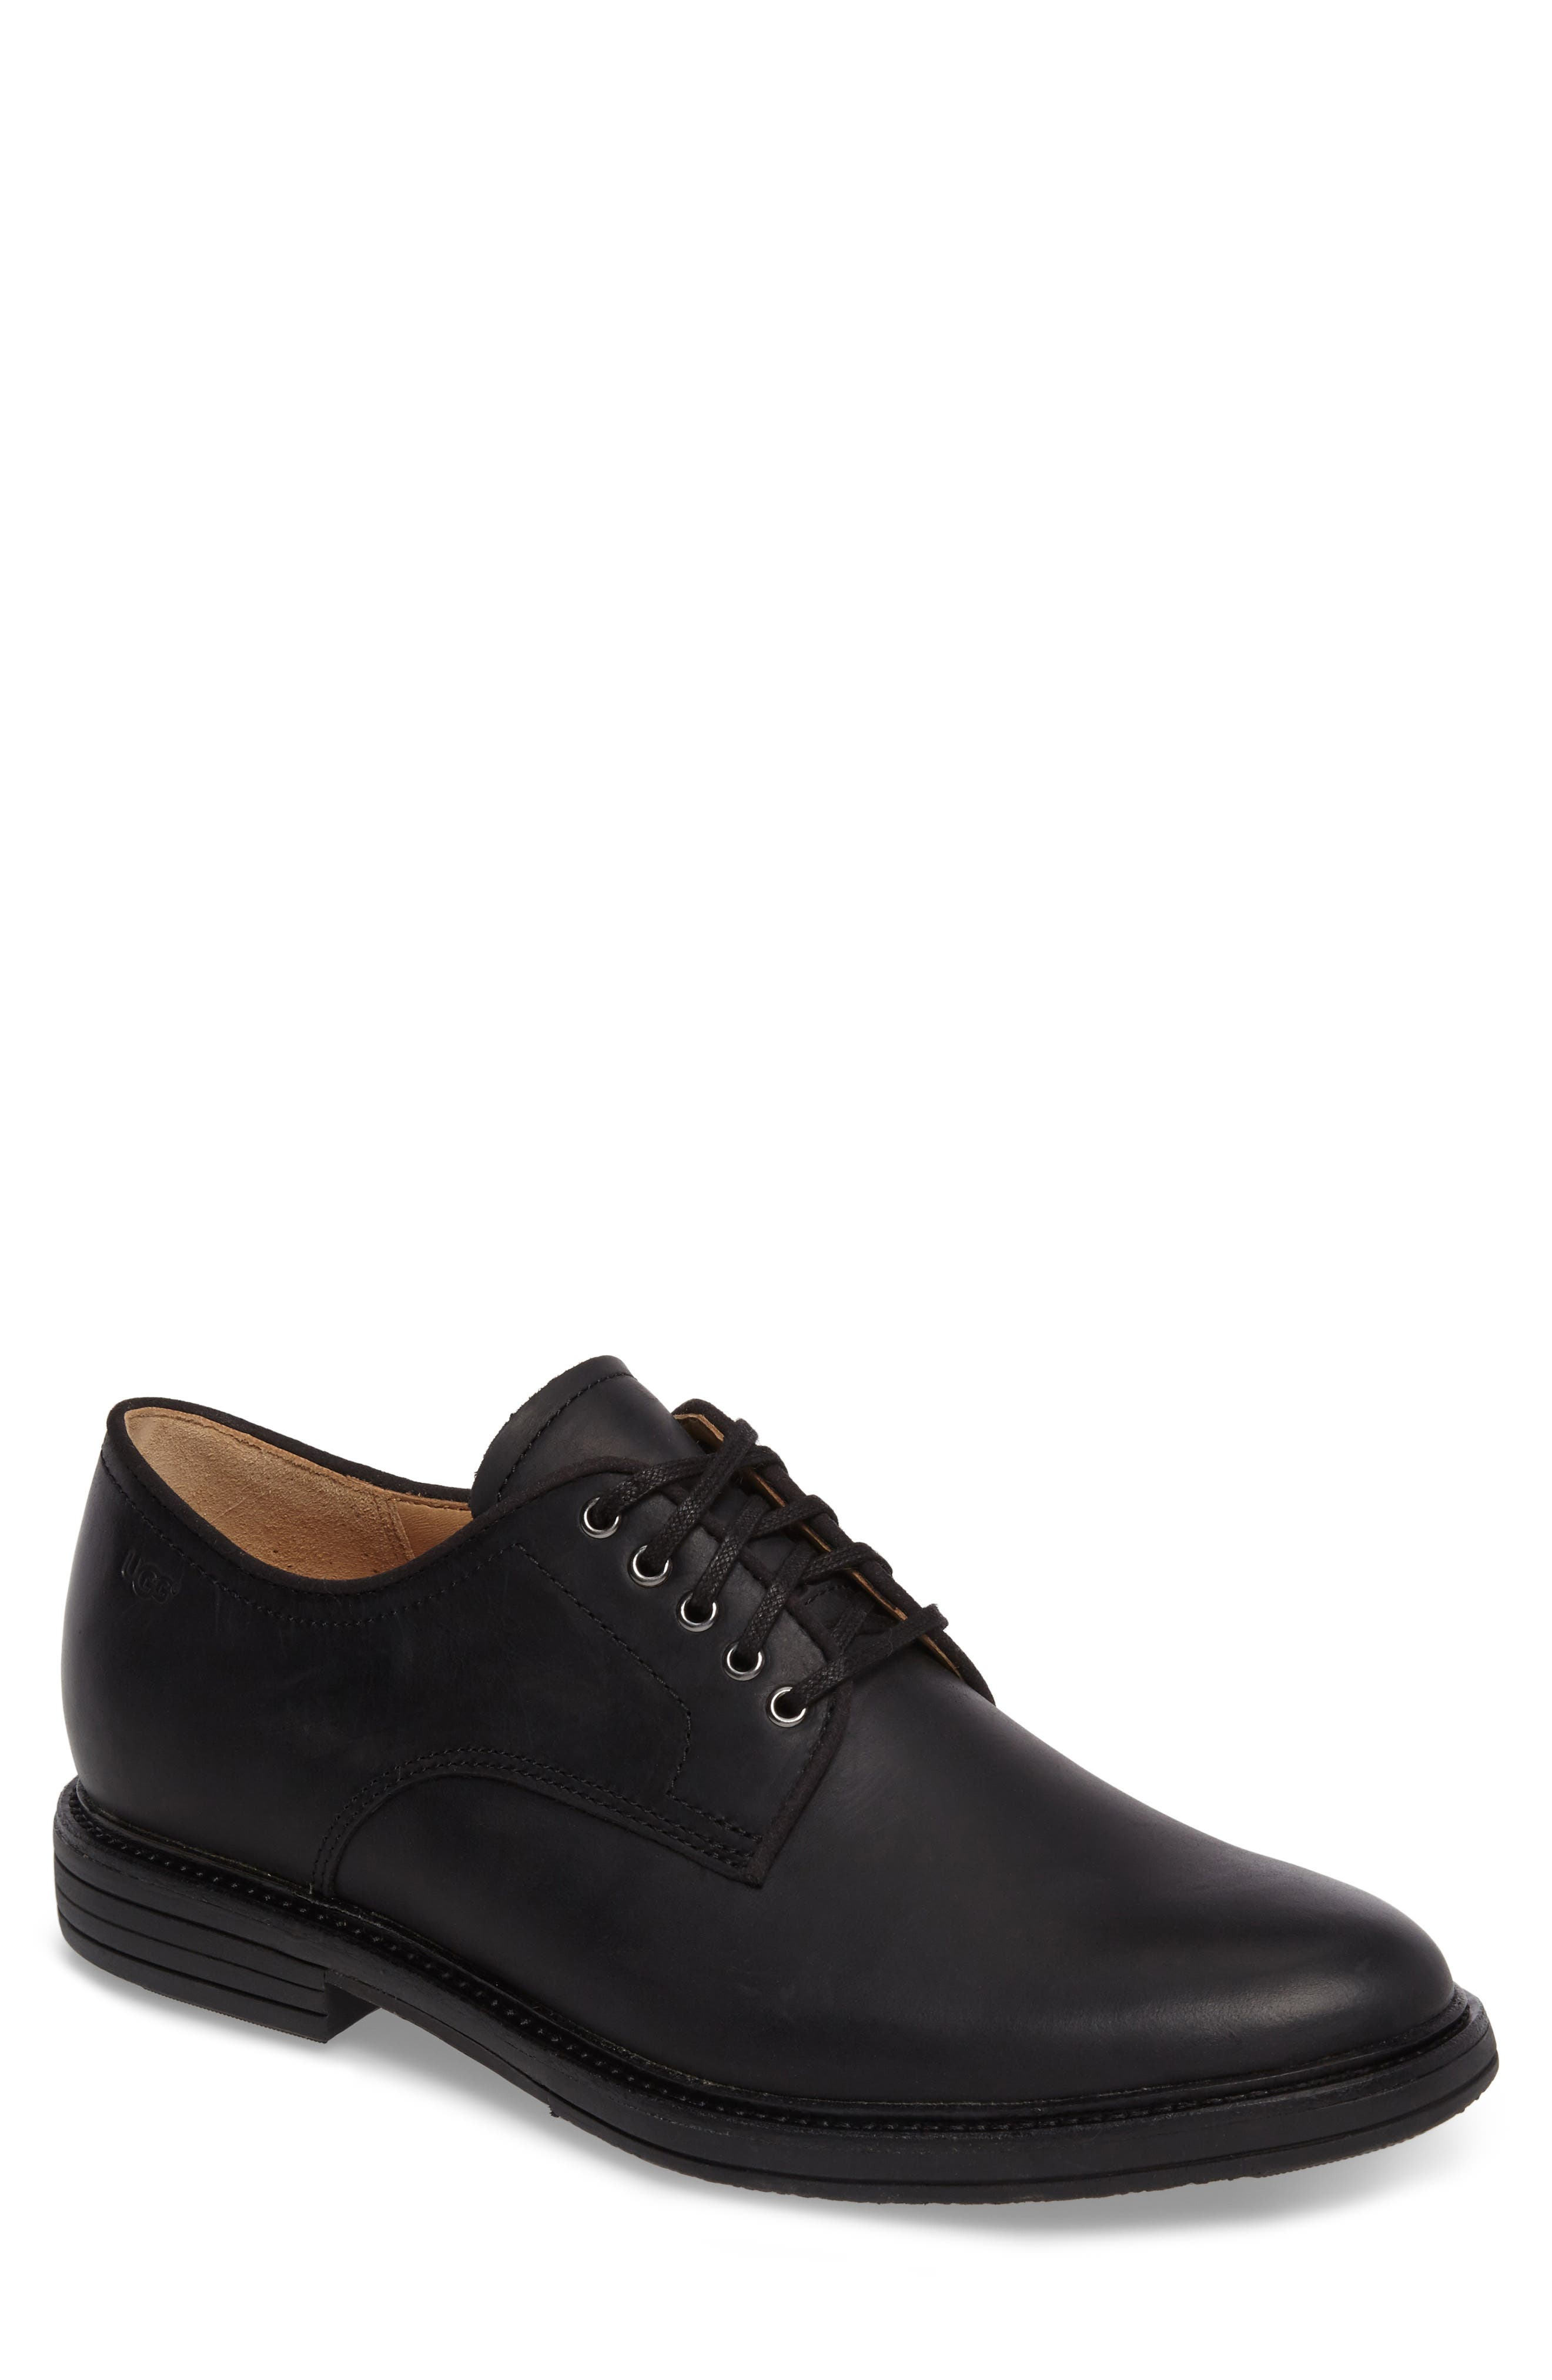 Jovin Buck Shoe,                             Main thumbnail 1, color,                             Black